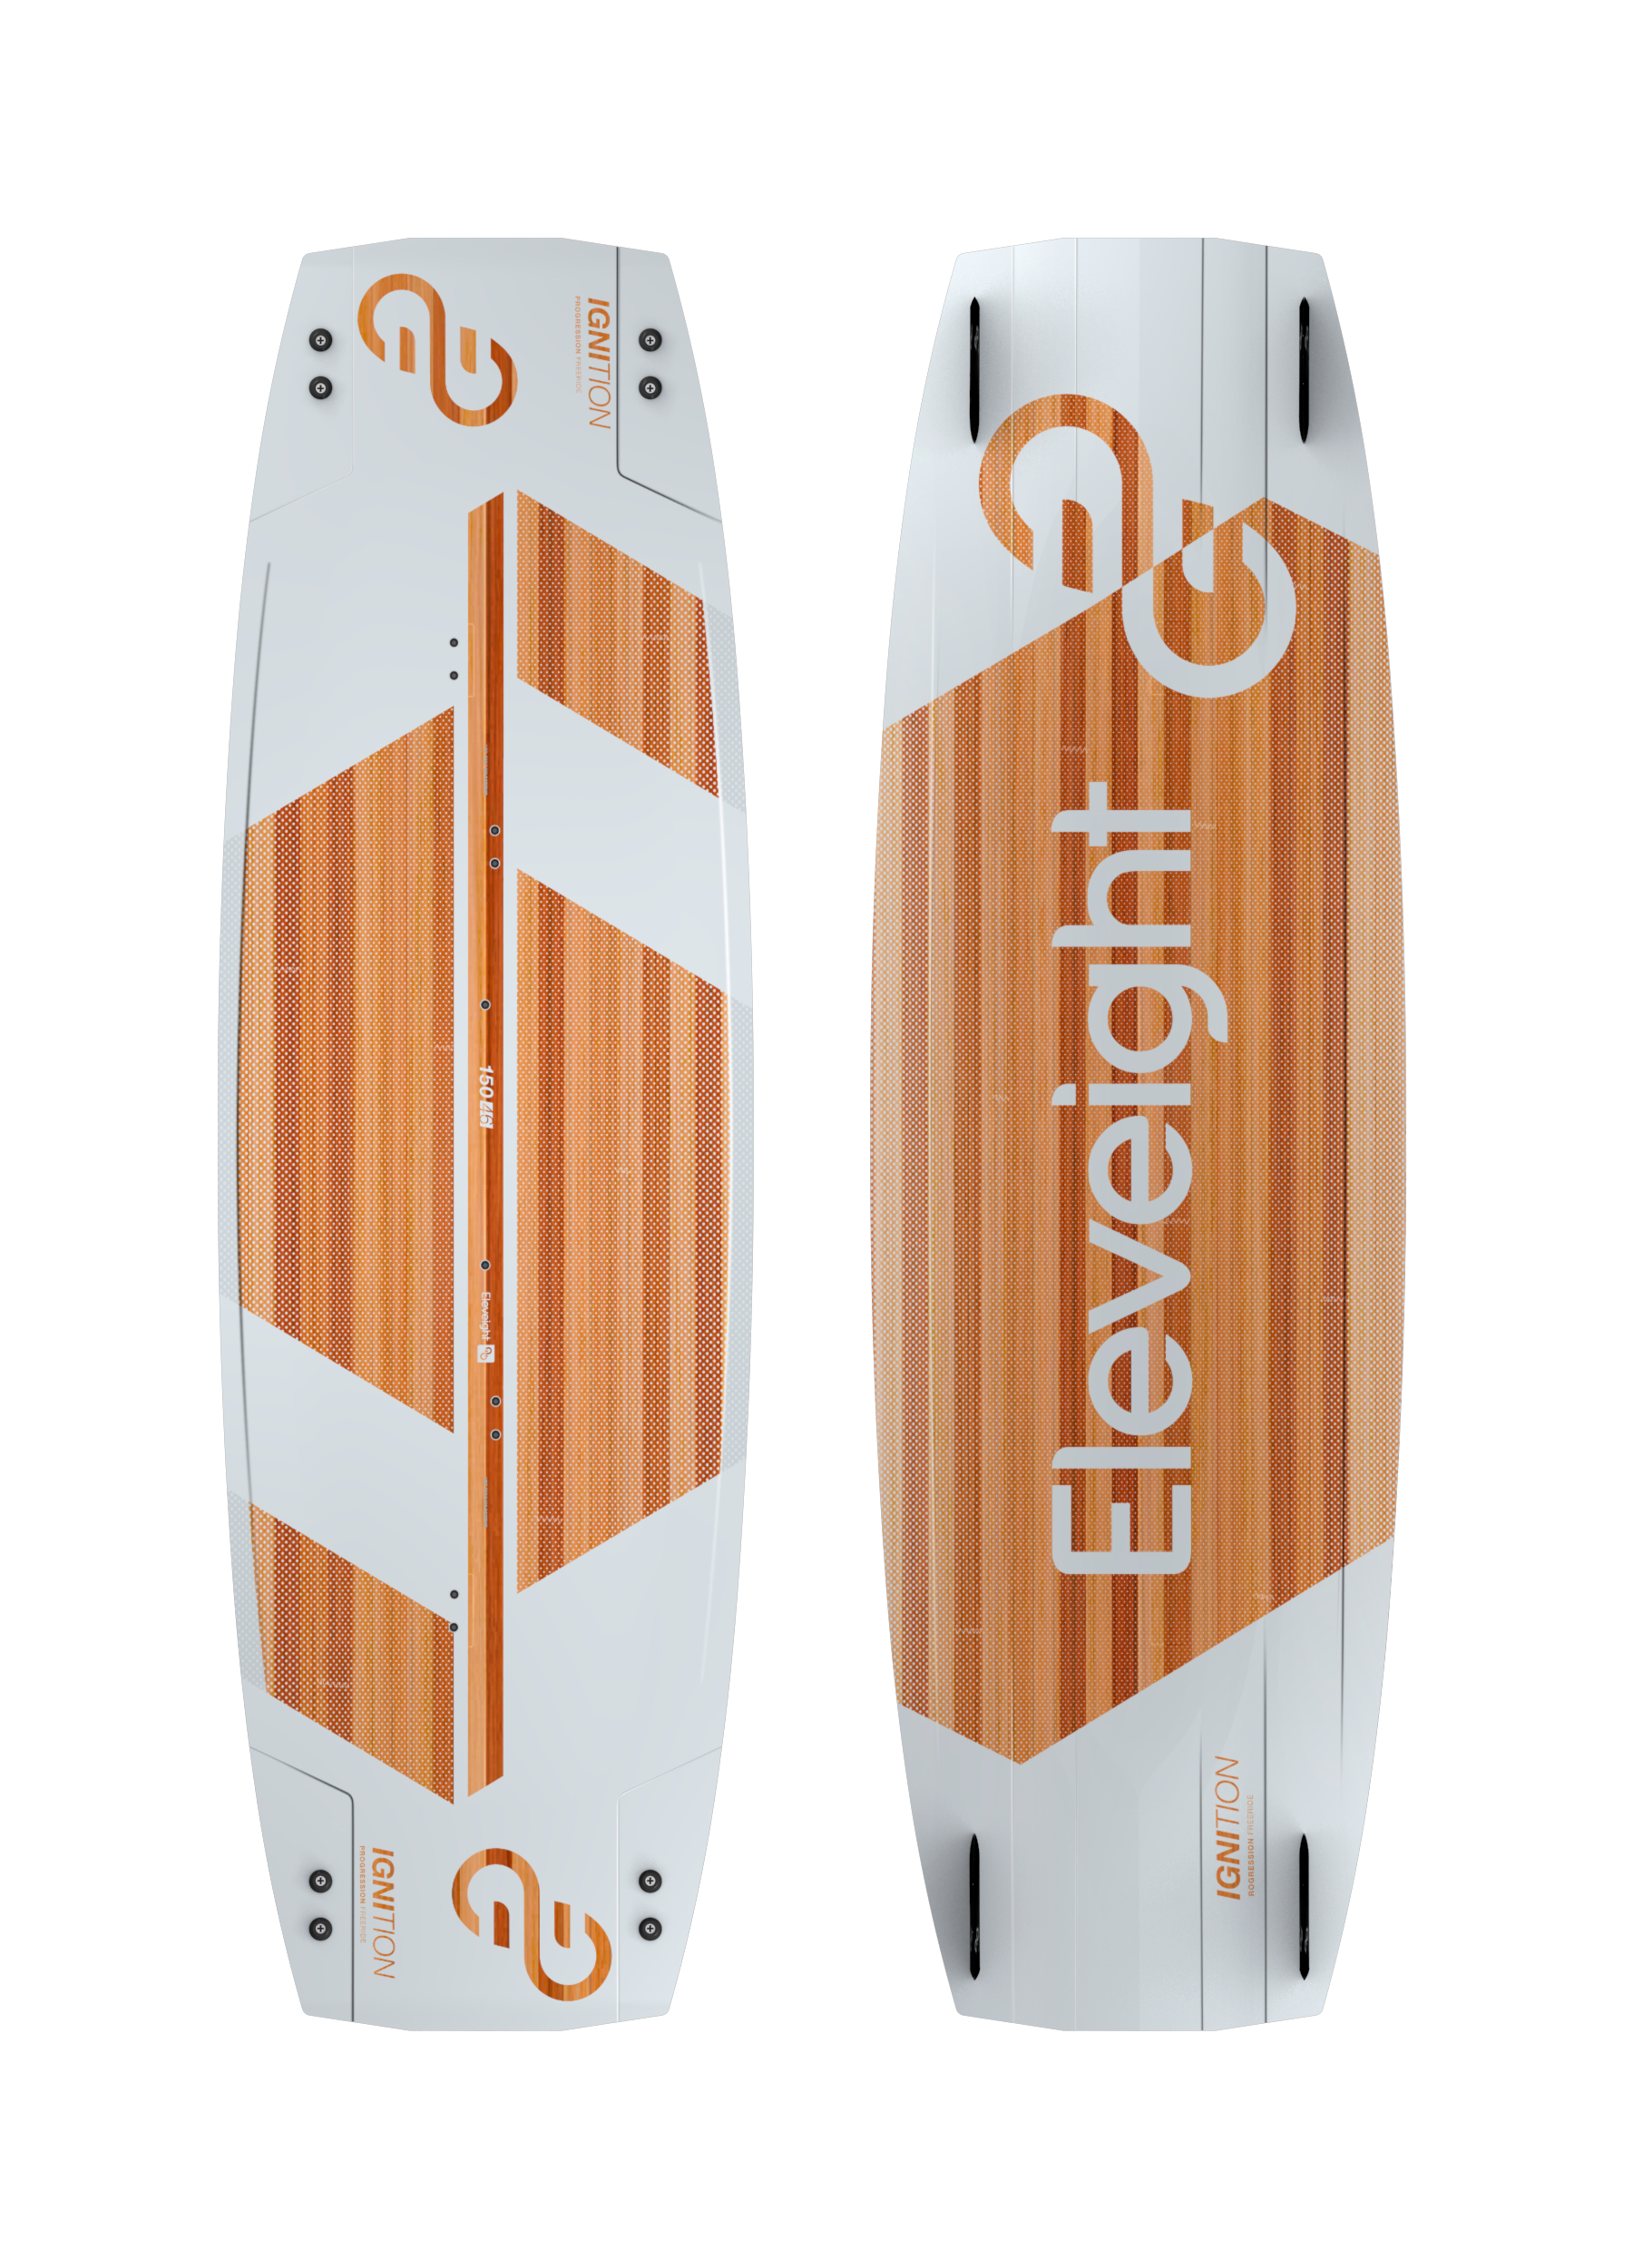 New for 2020! - IGNITIONSize 150x46PERFORMANCE FEATURESProgressive Freeride twin tip with excellent lightwind performanceLightweight Paulownia wood core for balanced flex and durabilityEarly planing for light wind fun and heavier ridersSingle concave for more lift and controlReinforced inserts used in snowboard constructionUltra-durable top sheet with UV resistanceAirgo pads and straps45mm G10 fins$799.00